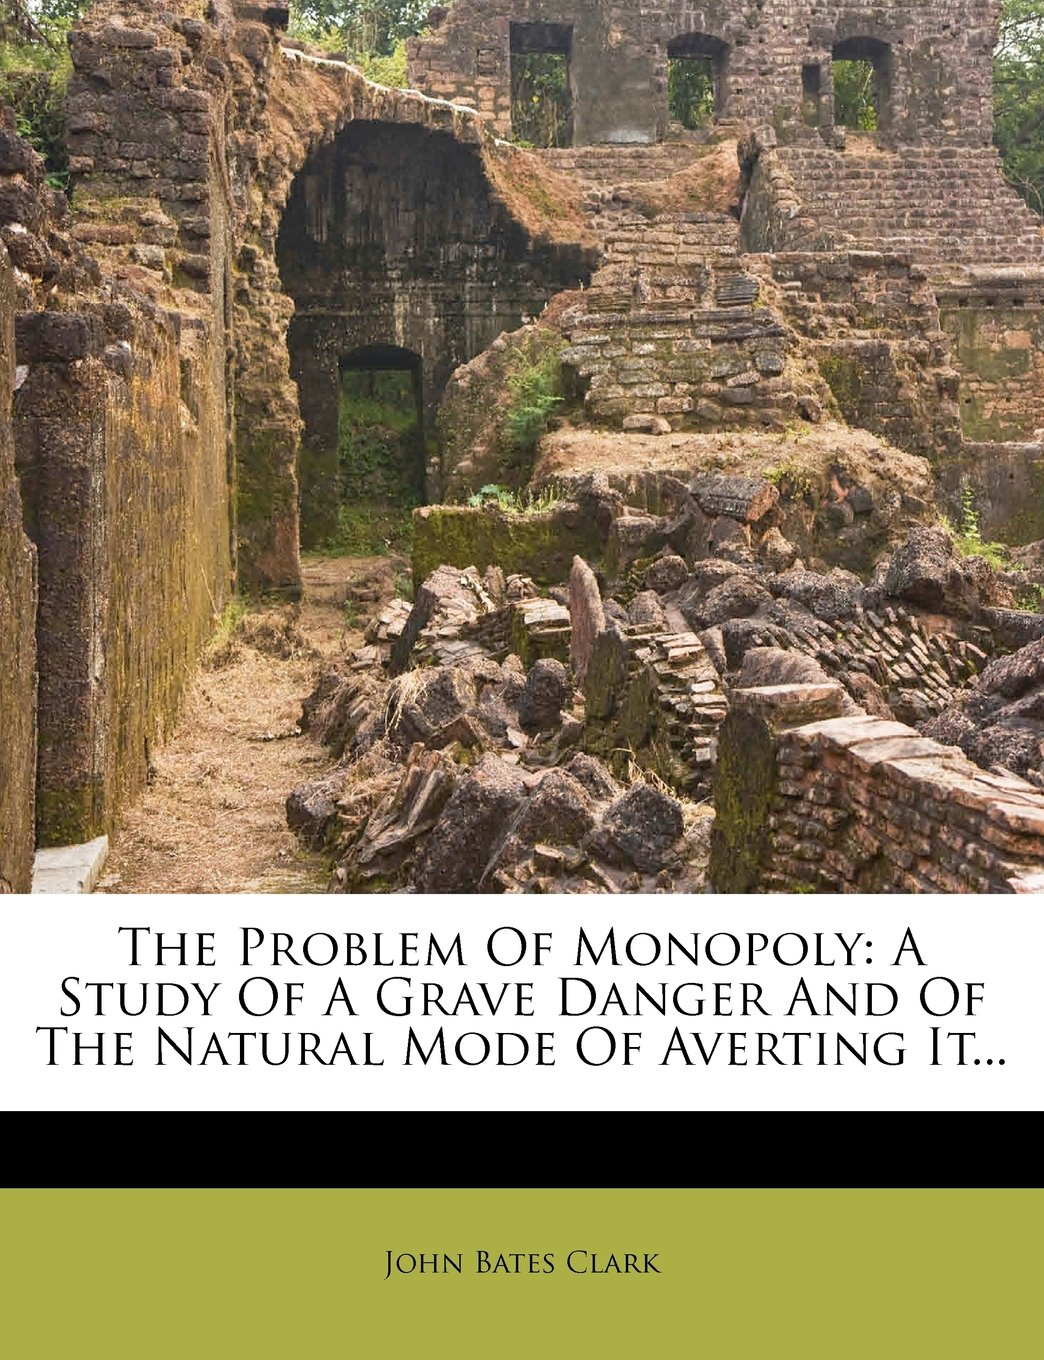 The Problem Of Monopoly: A Study Of A Grave Danger And Of The Natural Mode Of Averting It... pdf